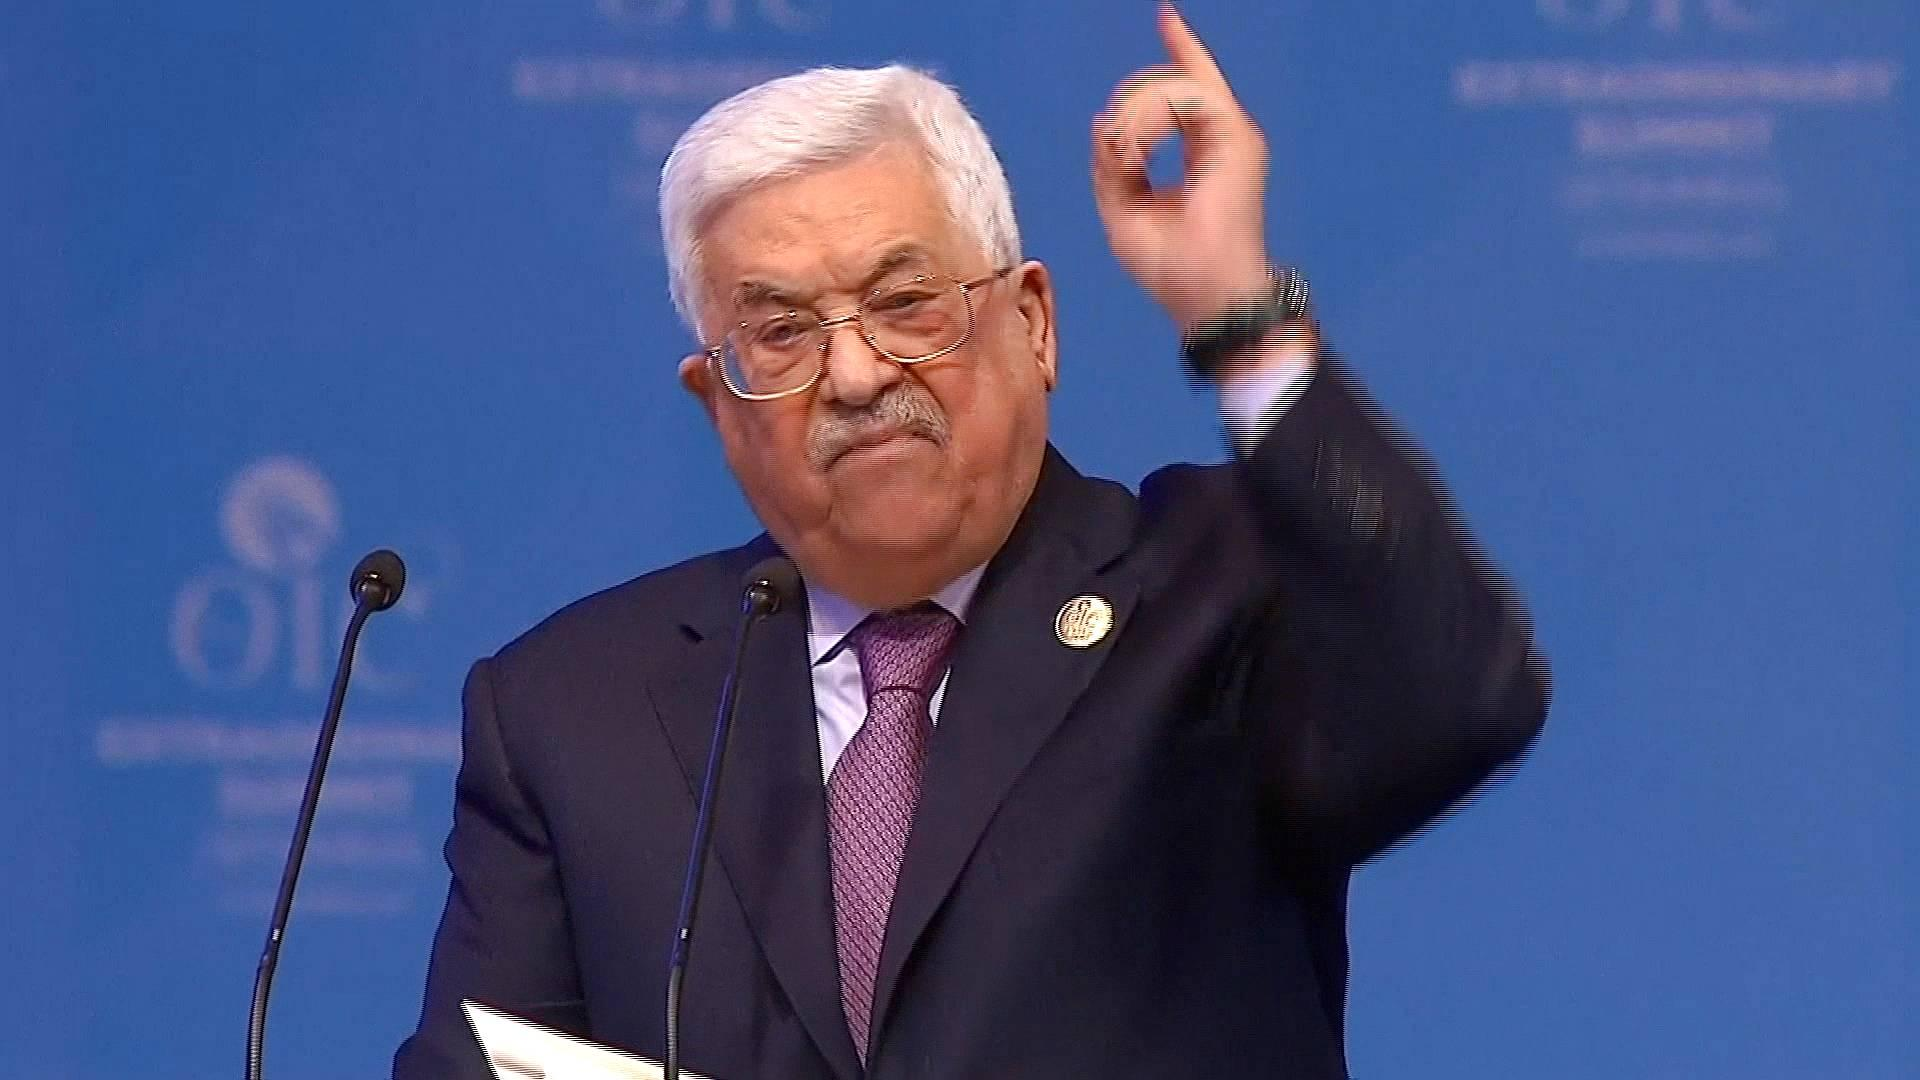 At OIC summit, Abbas crosses a line into apparent antisemitism and rejectionism